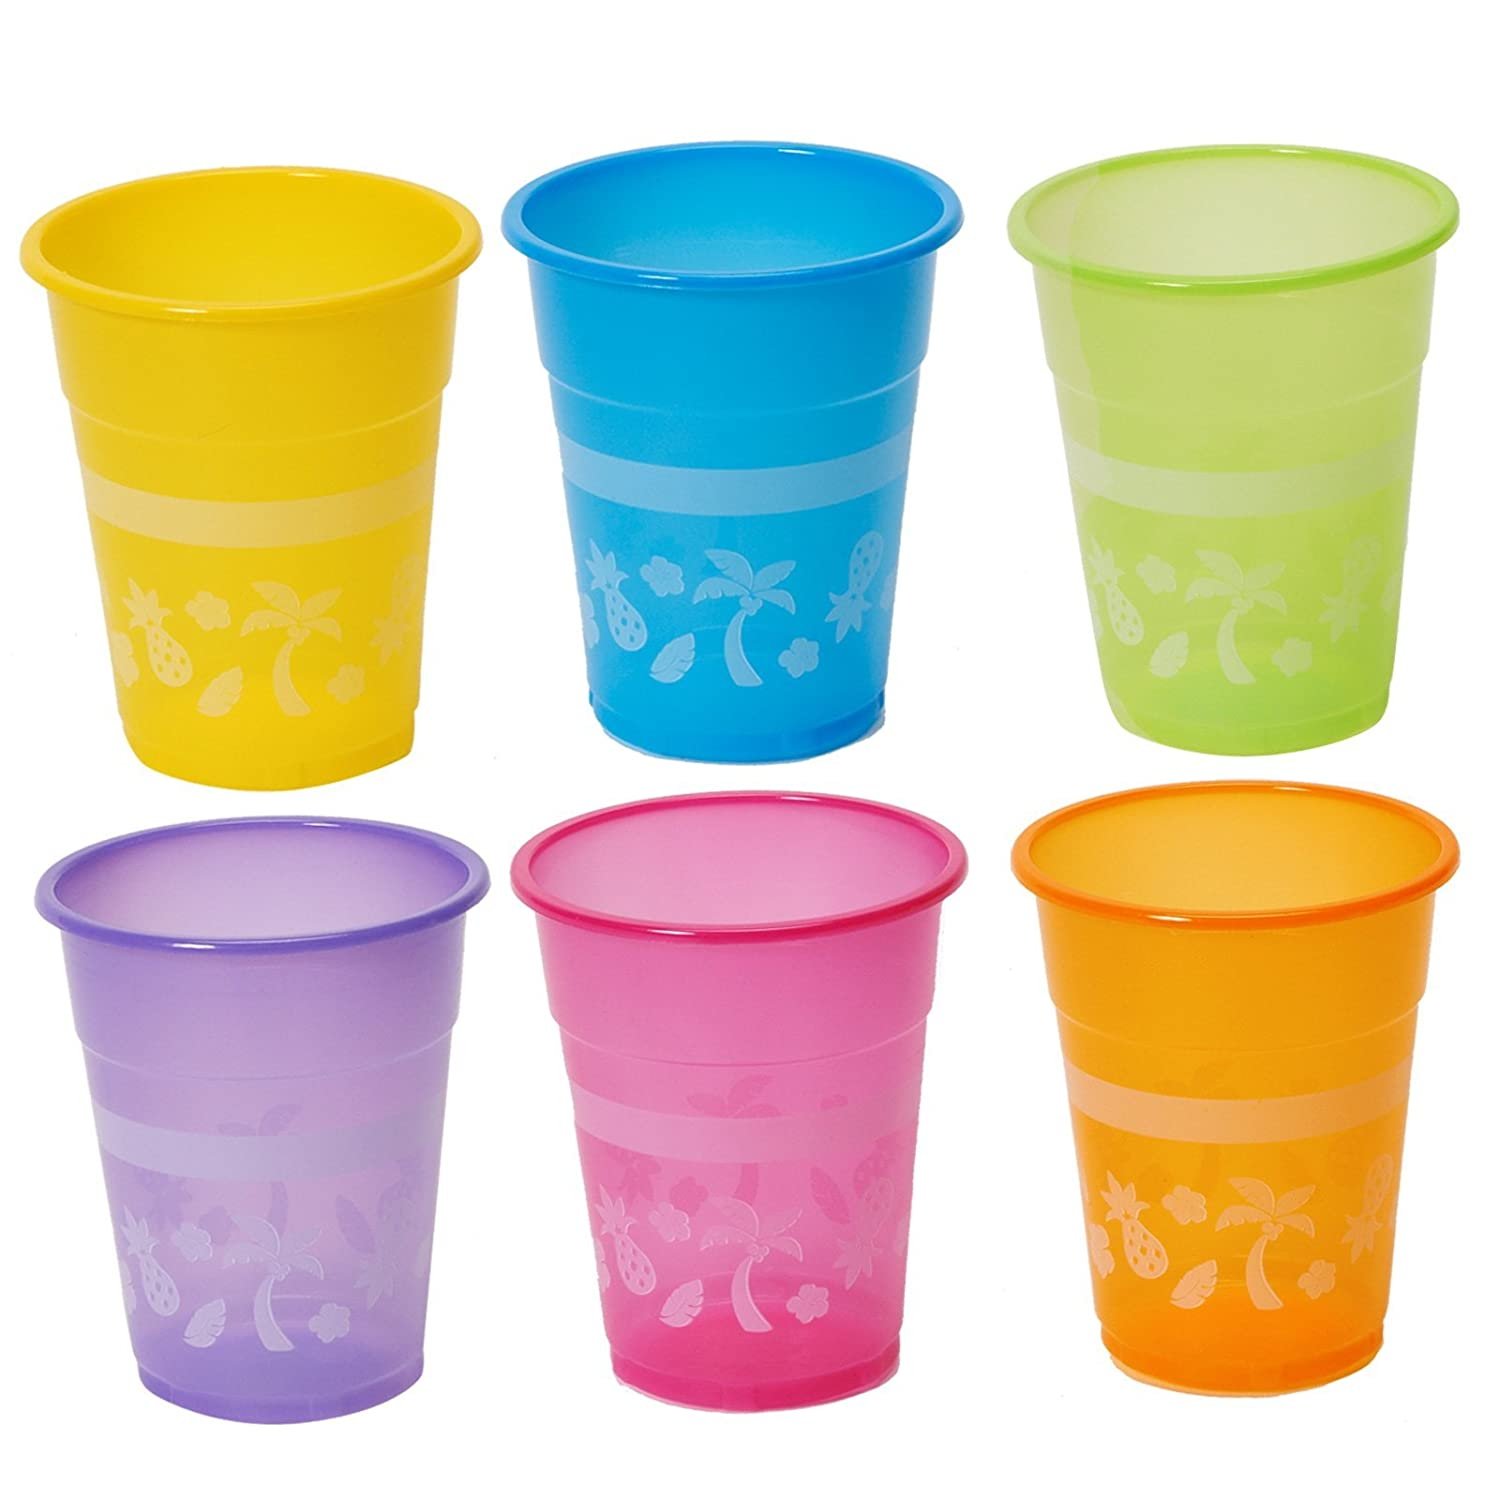 Luau Disposable Cups : package of 50 Fun Express 3L-3-3002